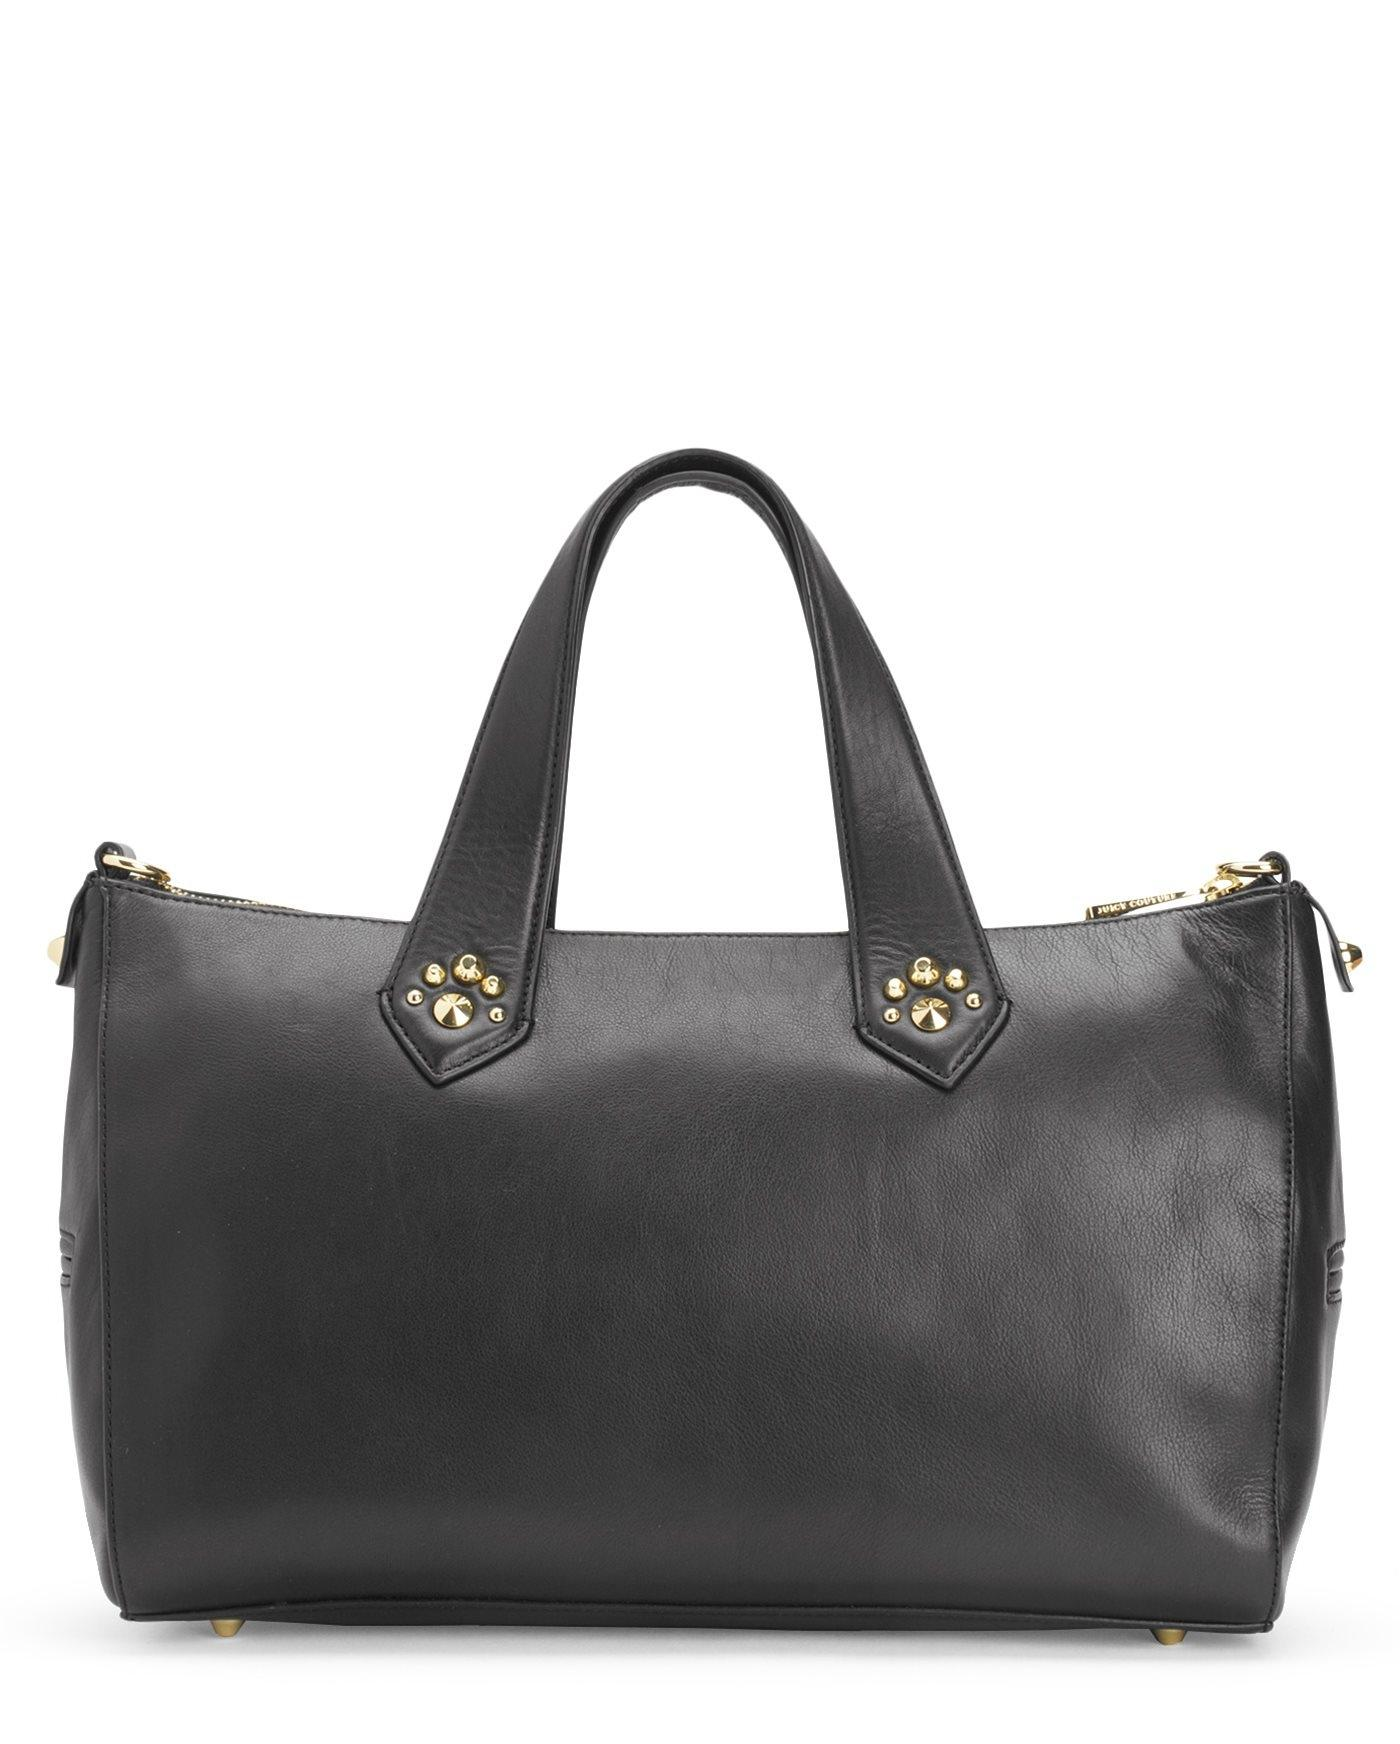 Juicy Couture Hollywood Leather Black Satchel on Sale, 45% Off ...